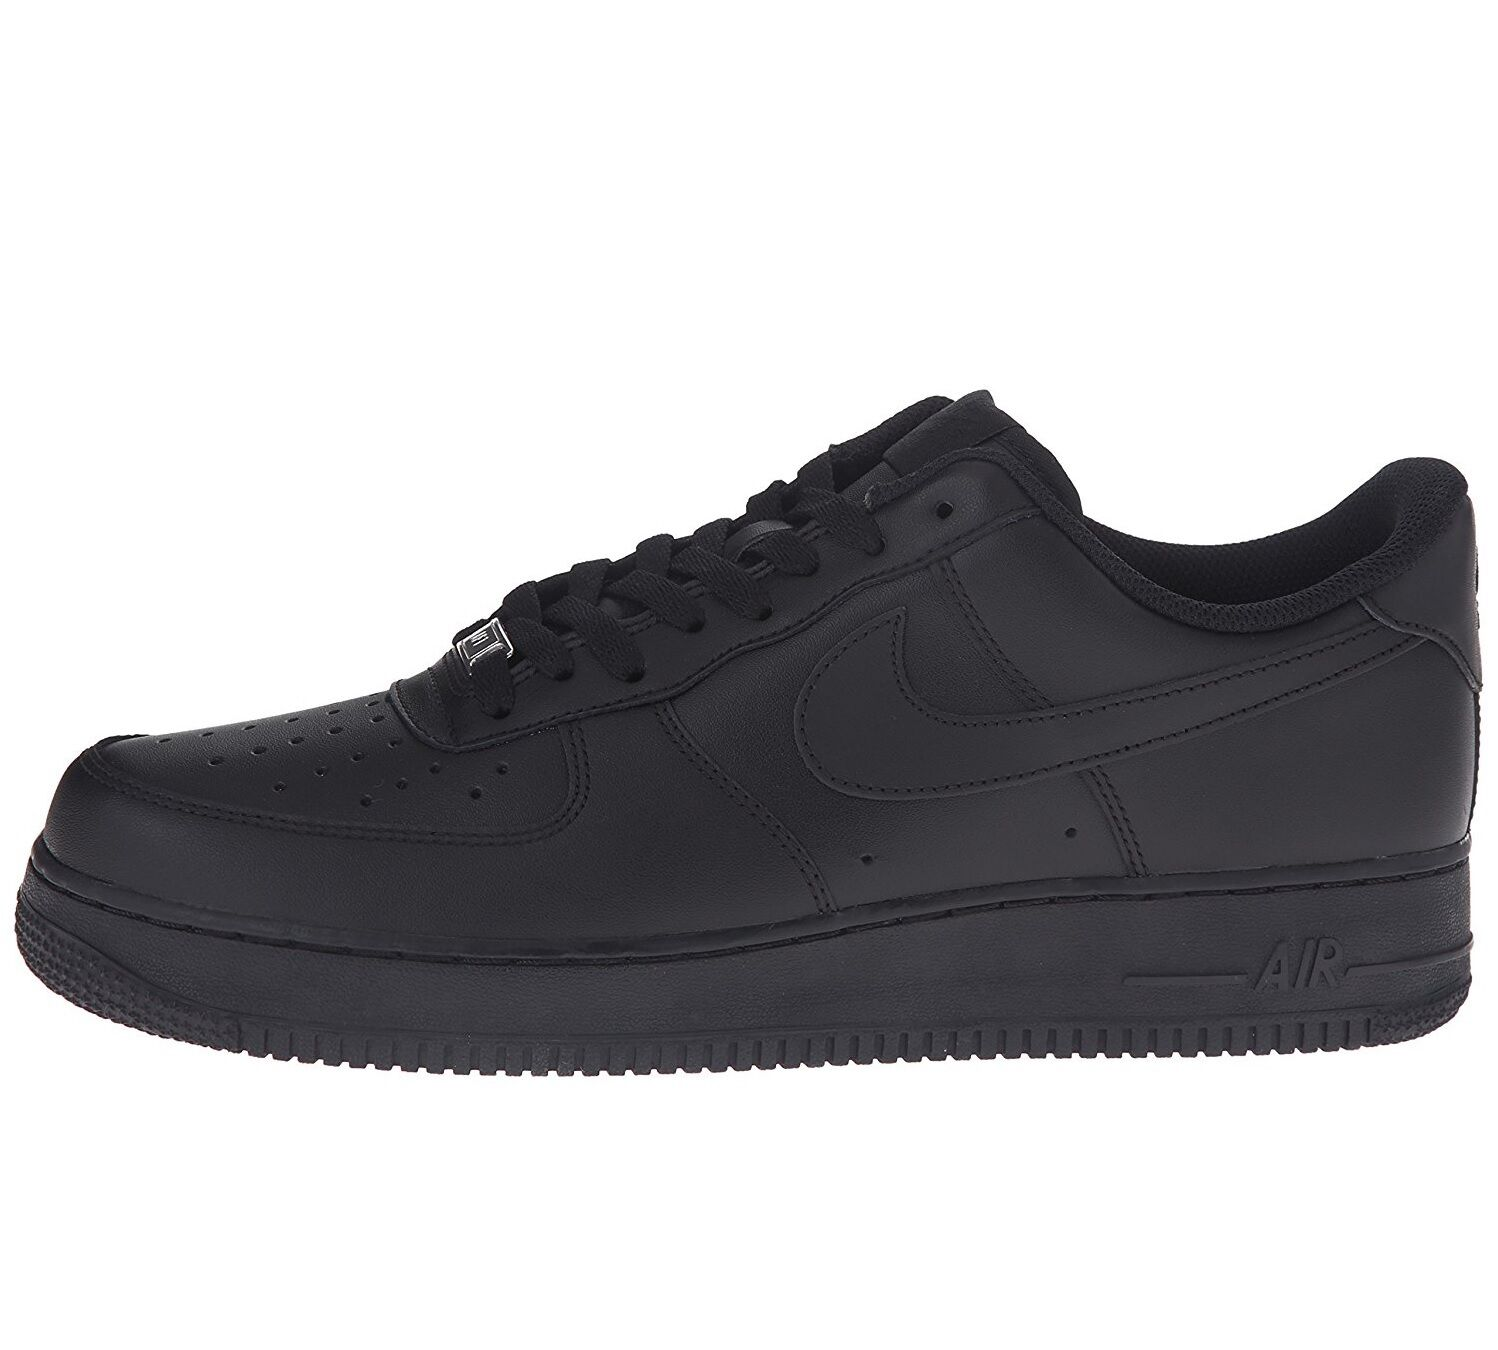 Nike Air Force 1 '07 Mens 315122-001 Black Leather Low Shoes Sneakers Size 8